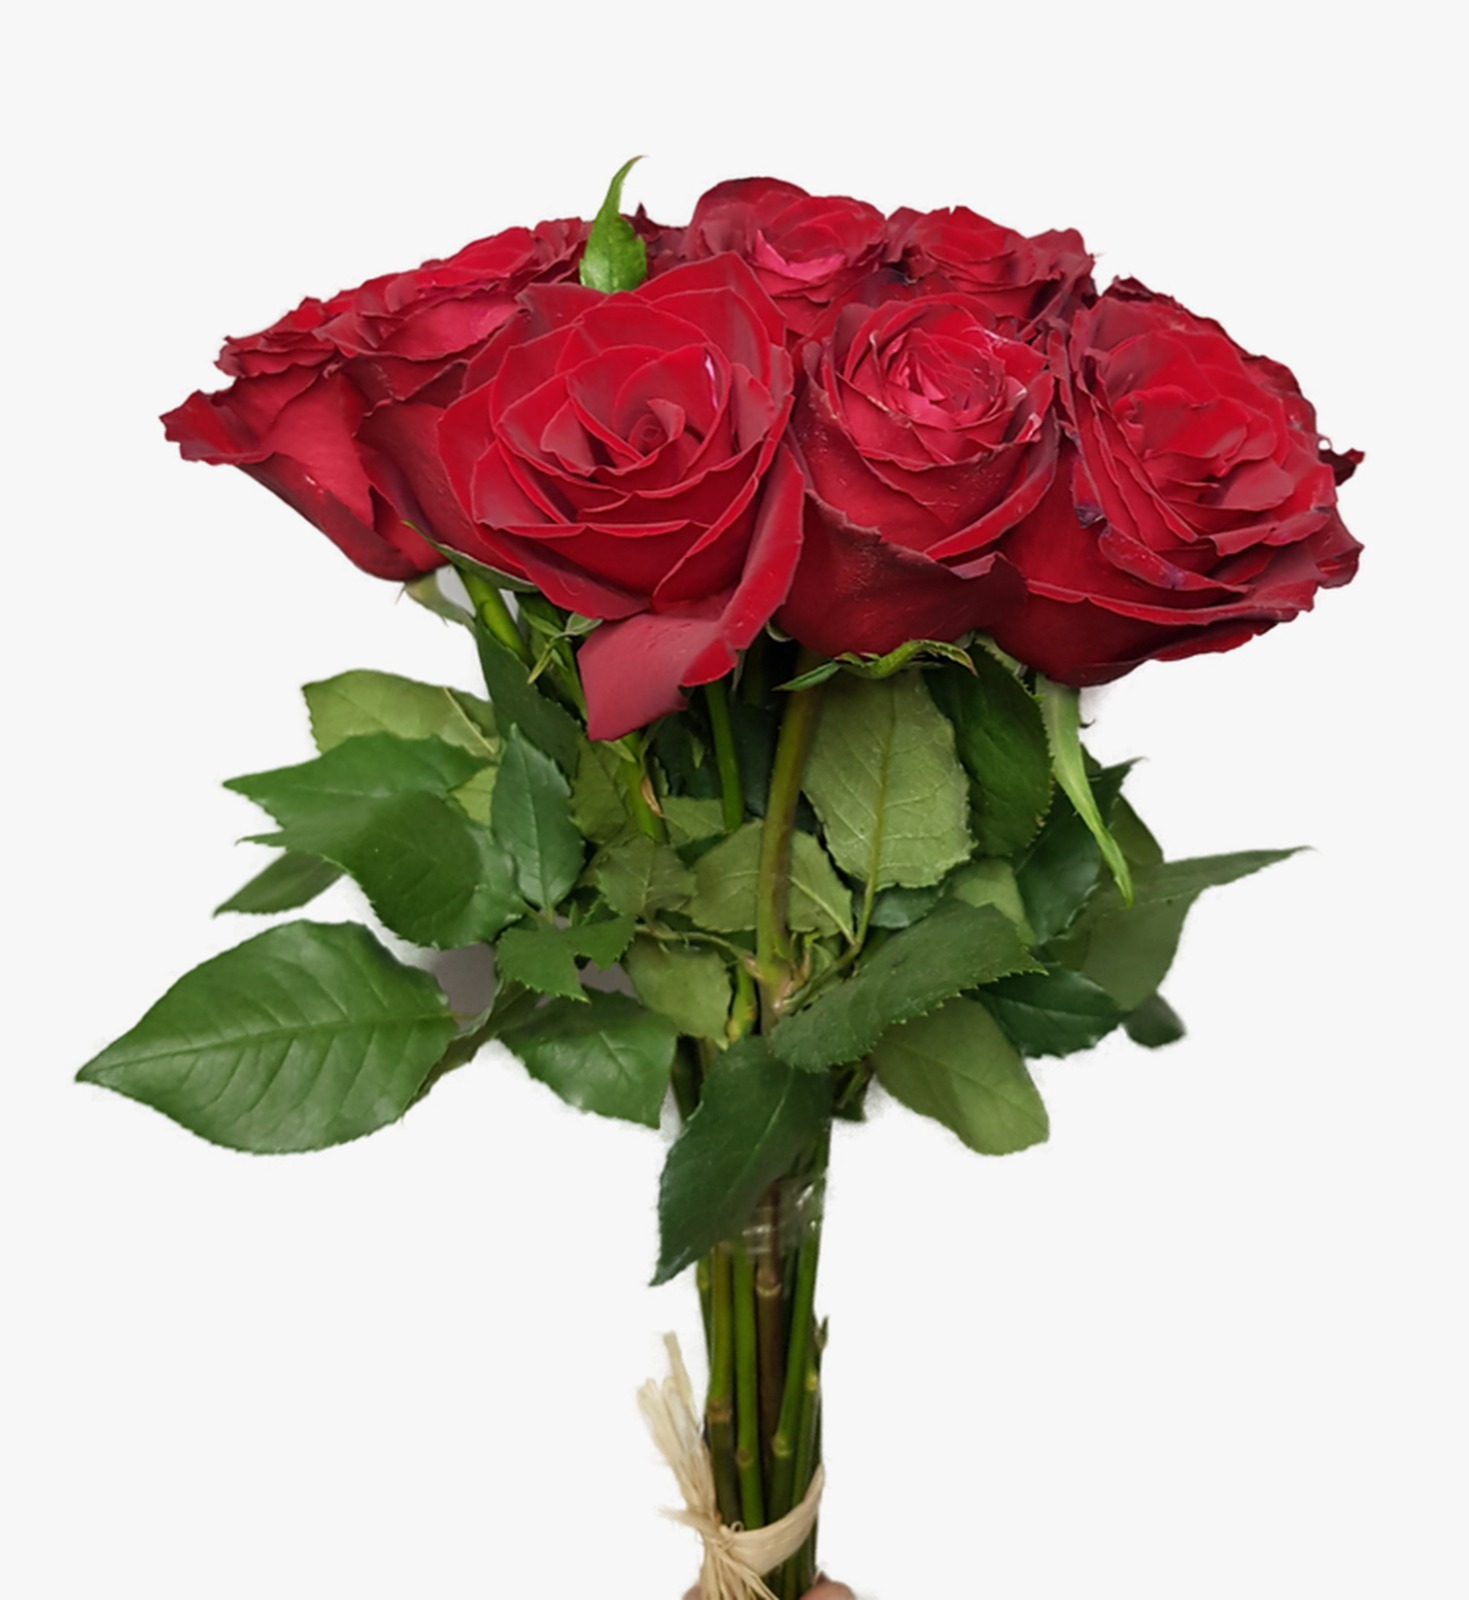 Rose - Red 'Wholesale Flowers'